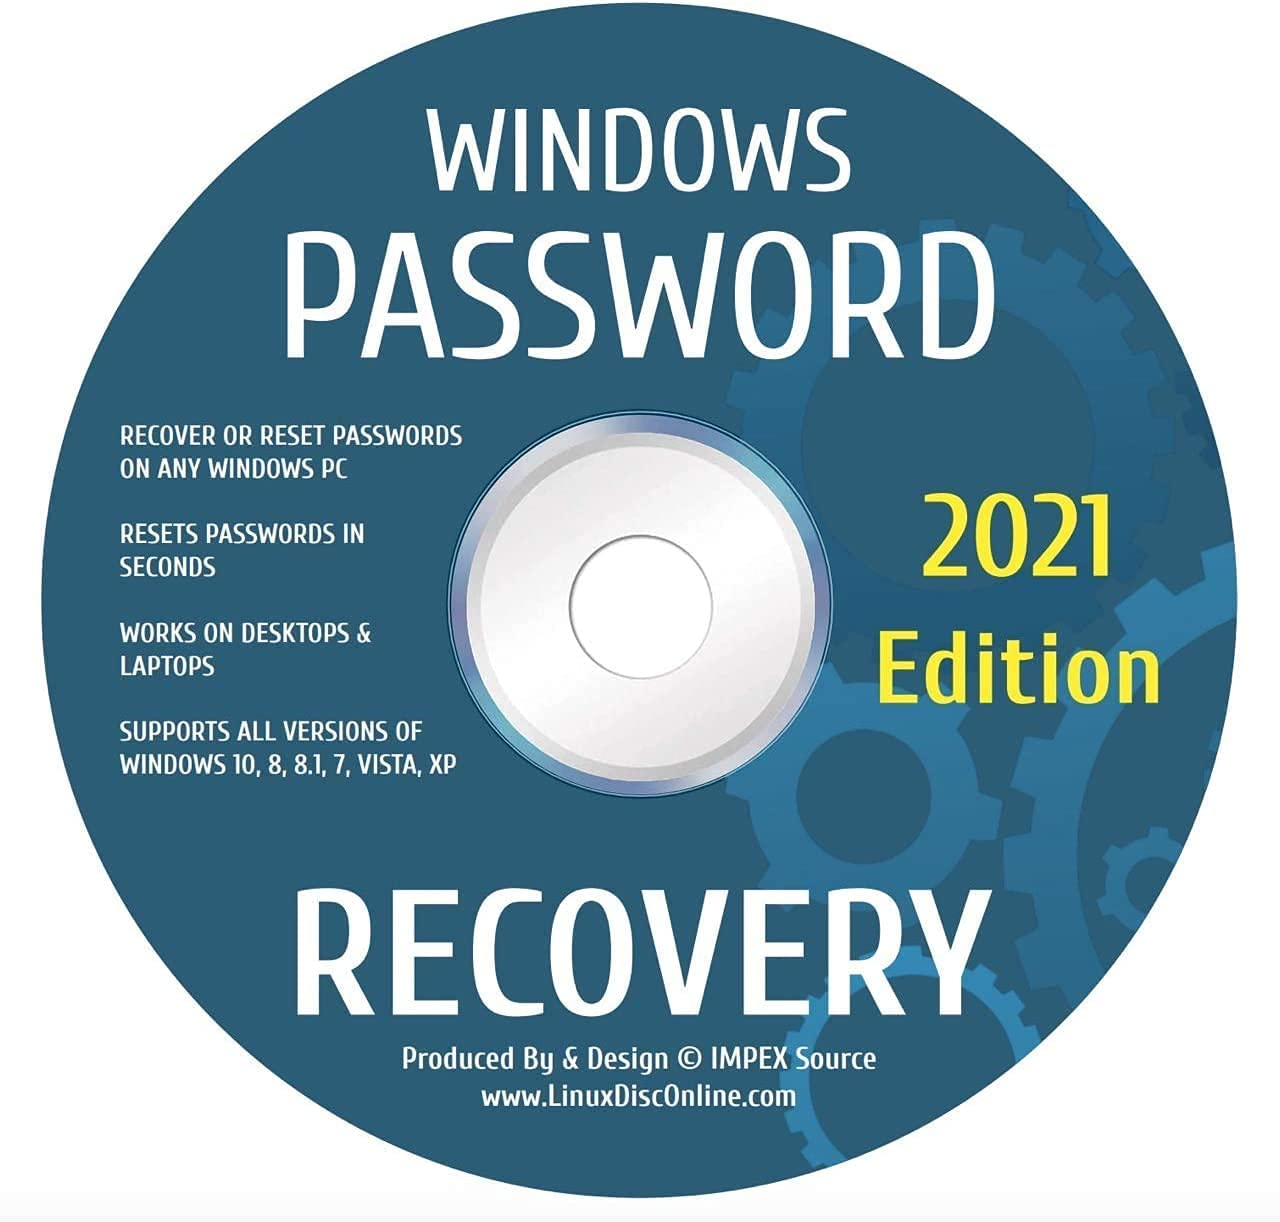 Password Reset Recovery Disk Compatible With mart Win Vis 8.1 10 8 Popular brand in the world 7